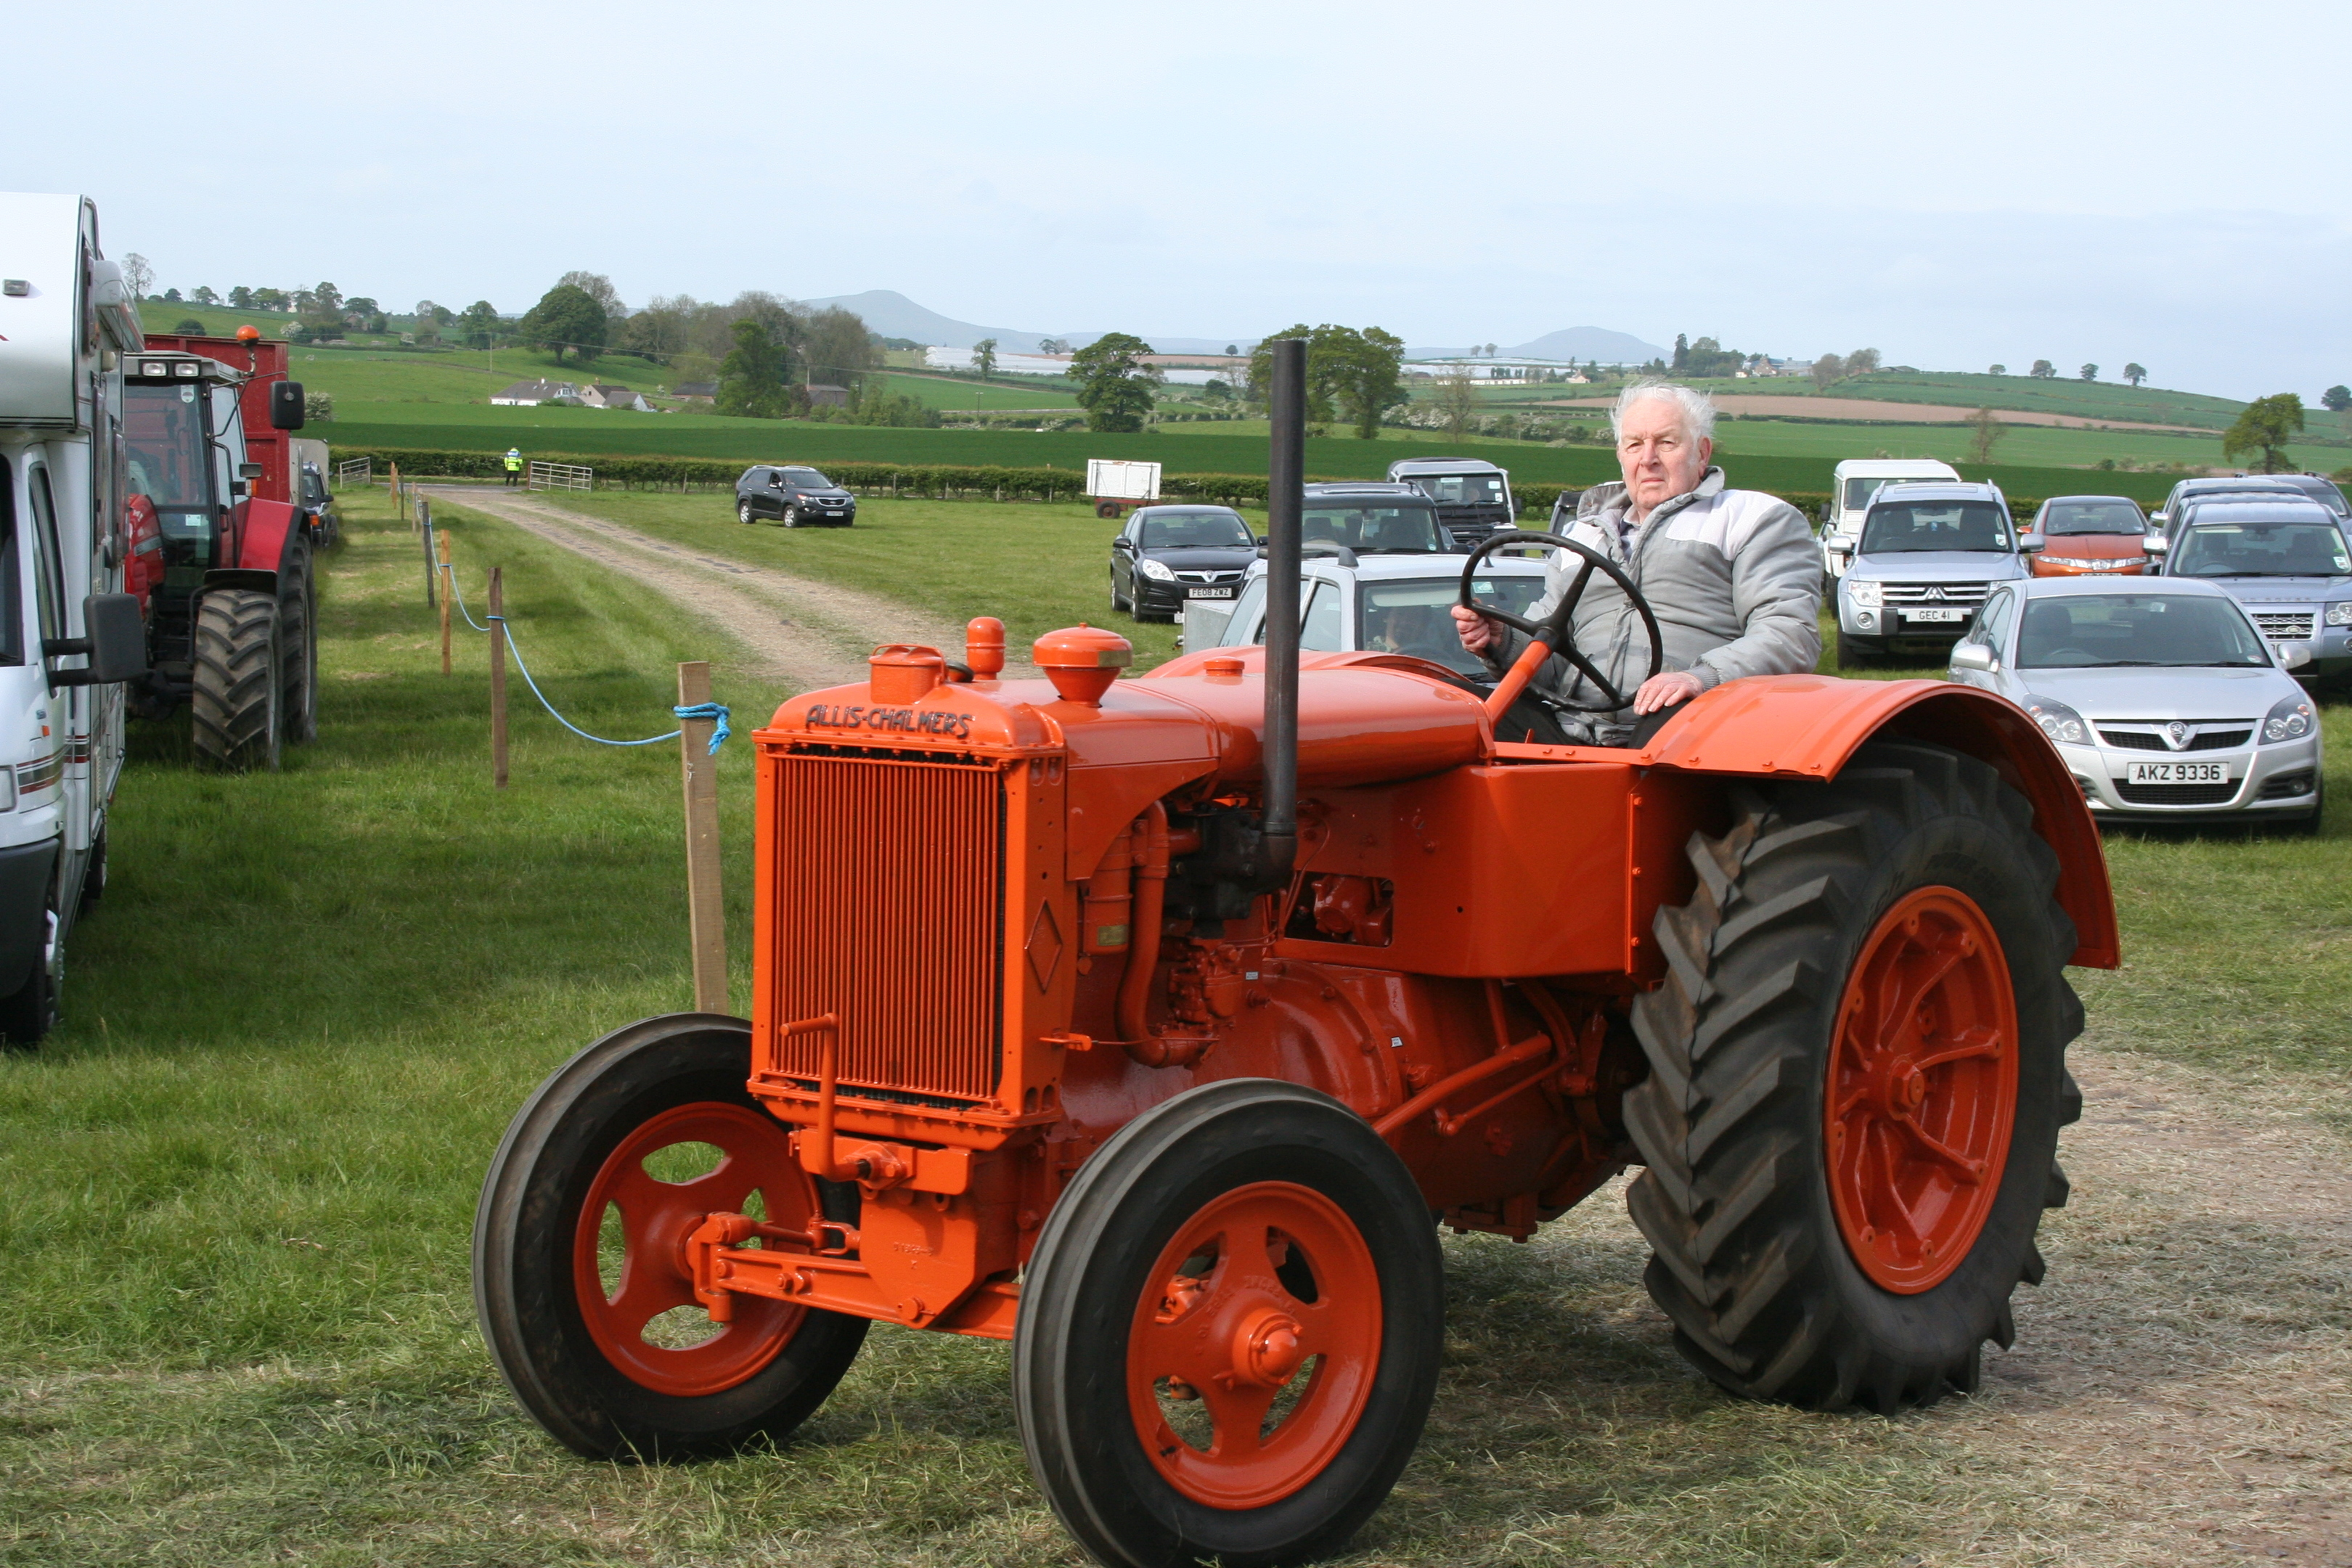 Murray Simpson amassed a collection of 45 tractors